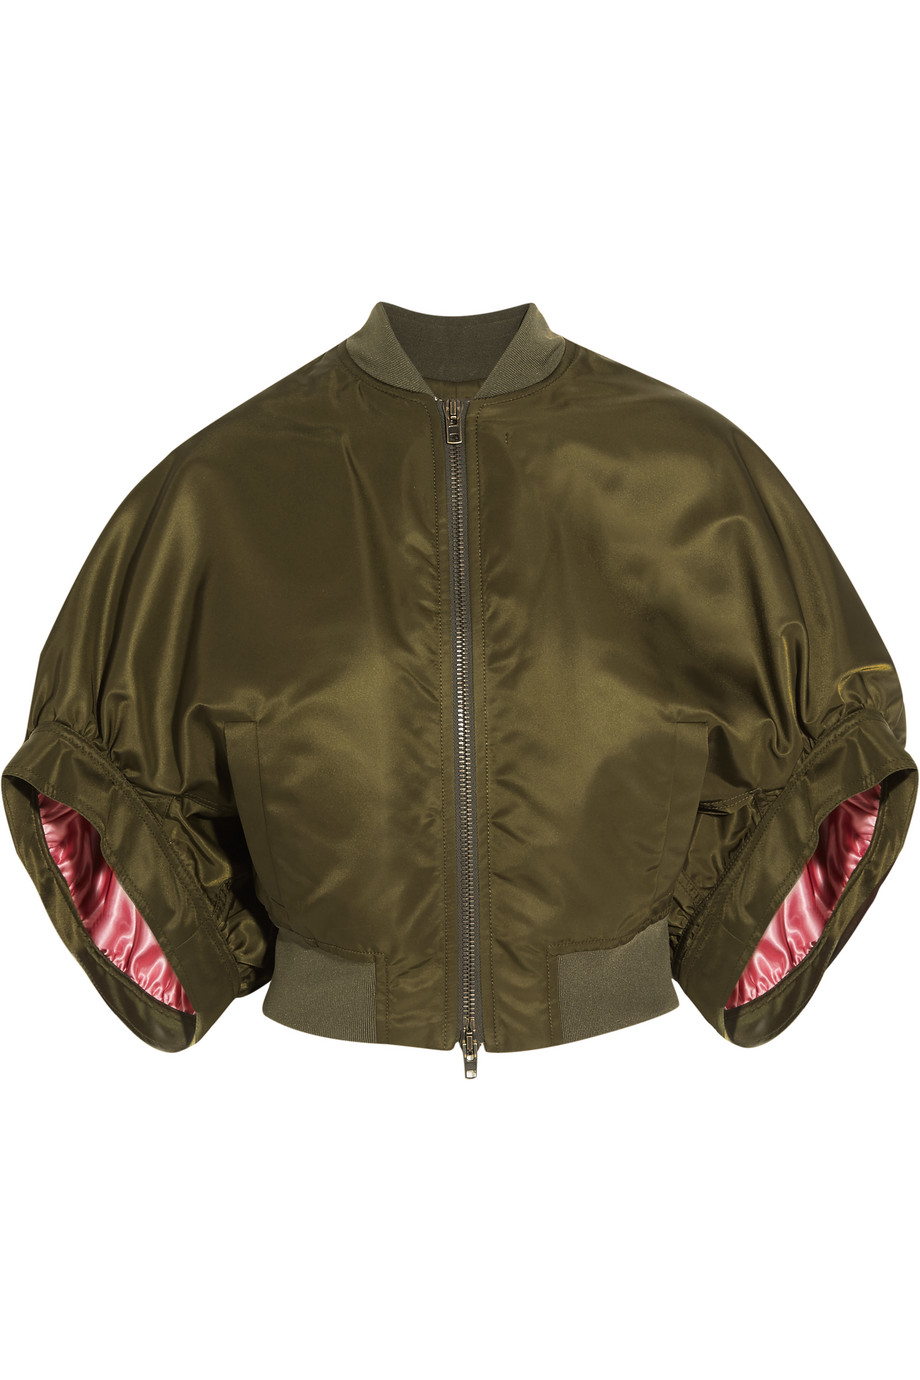 Givenchy Cropped Bomber Jacket in Army-Green Satin, Army Green, Women's, Size: 38